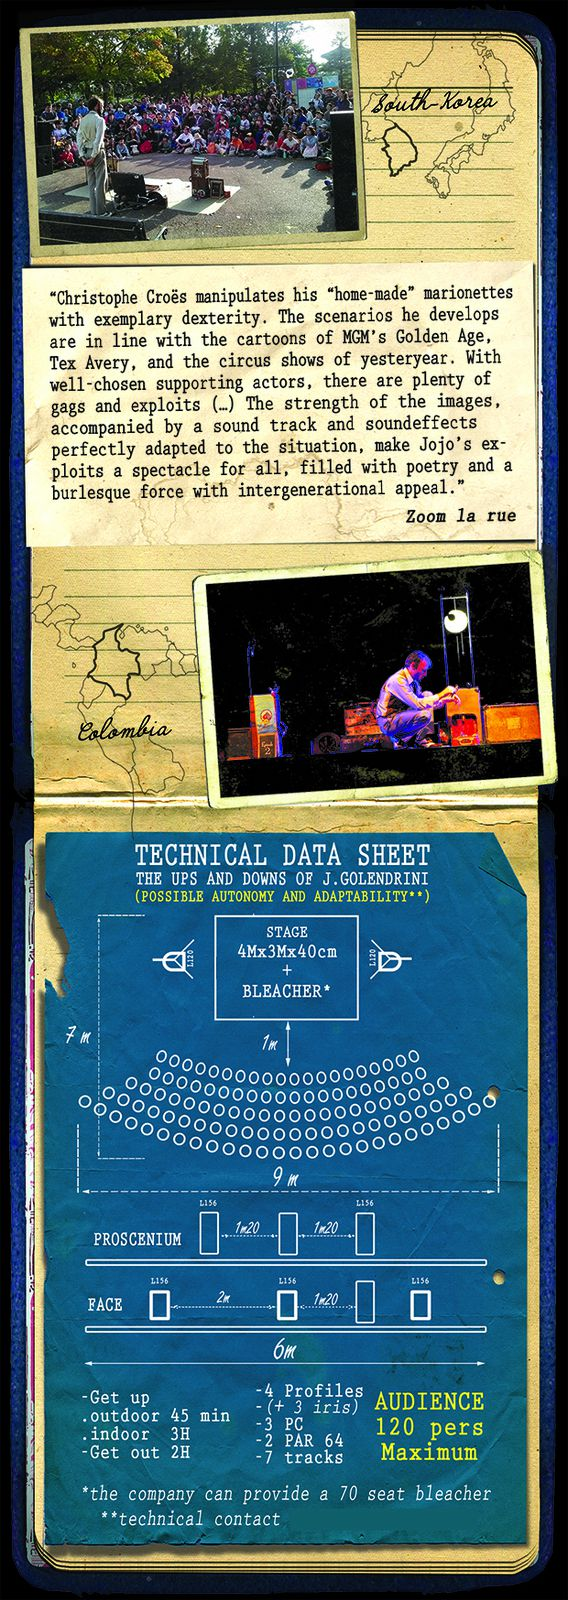 The ups and Downs of J.GOLENDRINI press book / tecnical data sheet